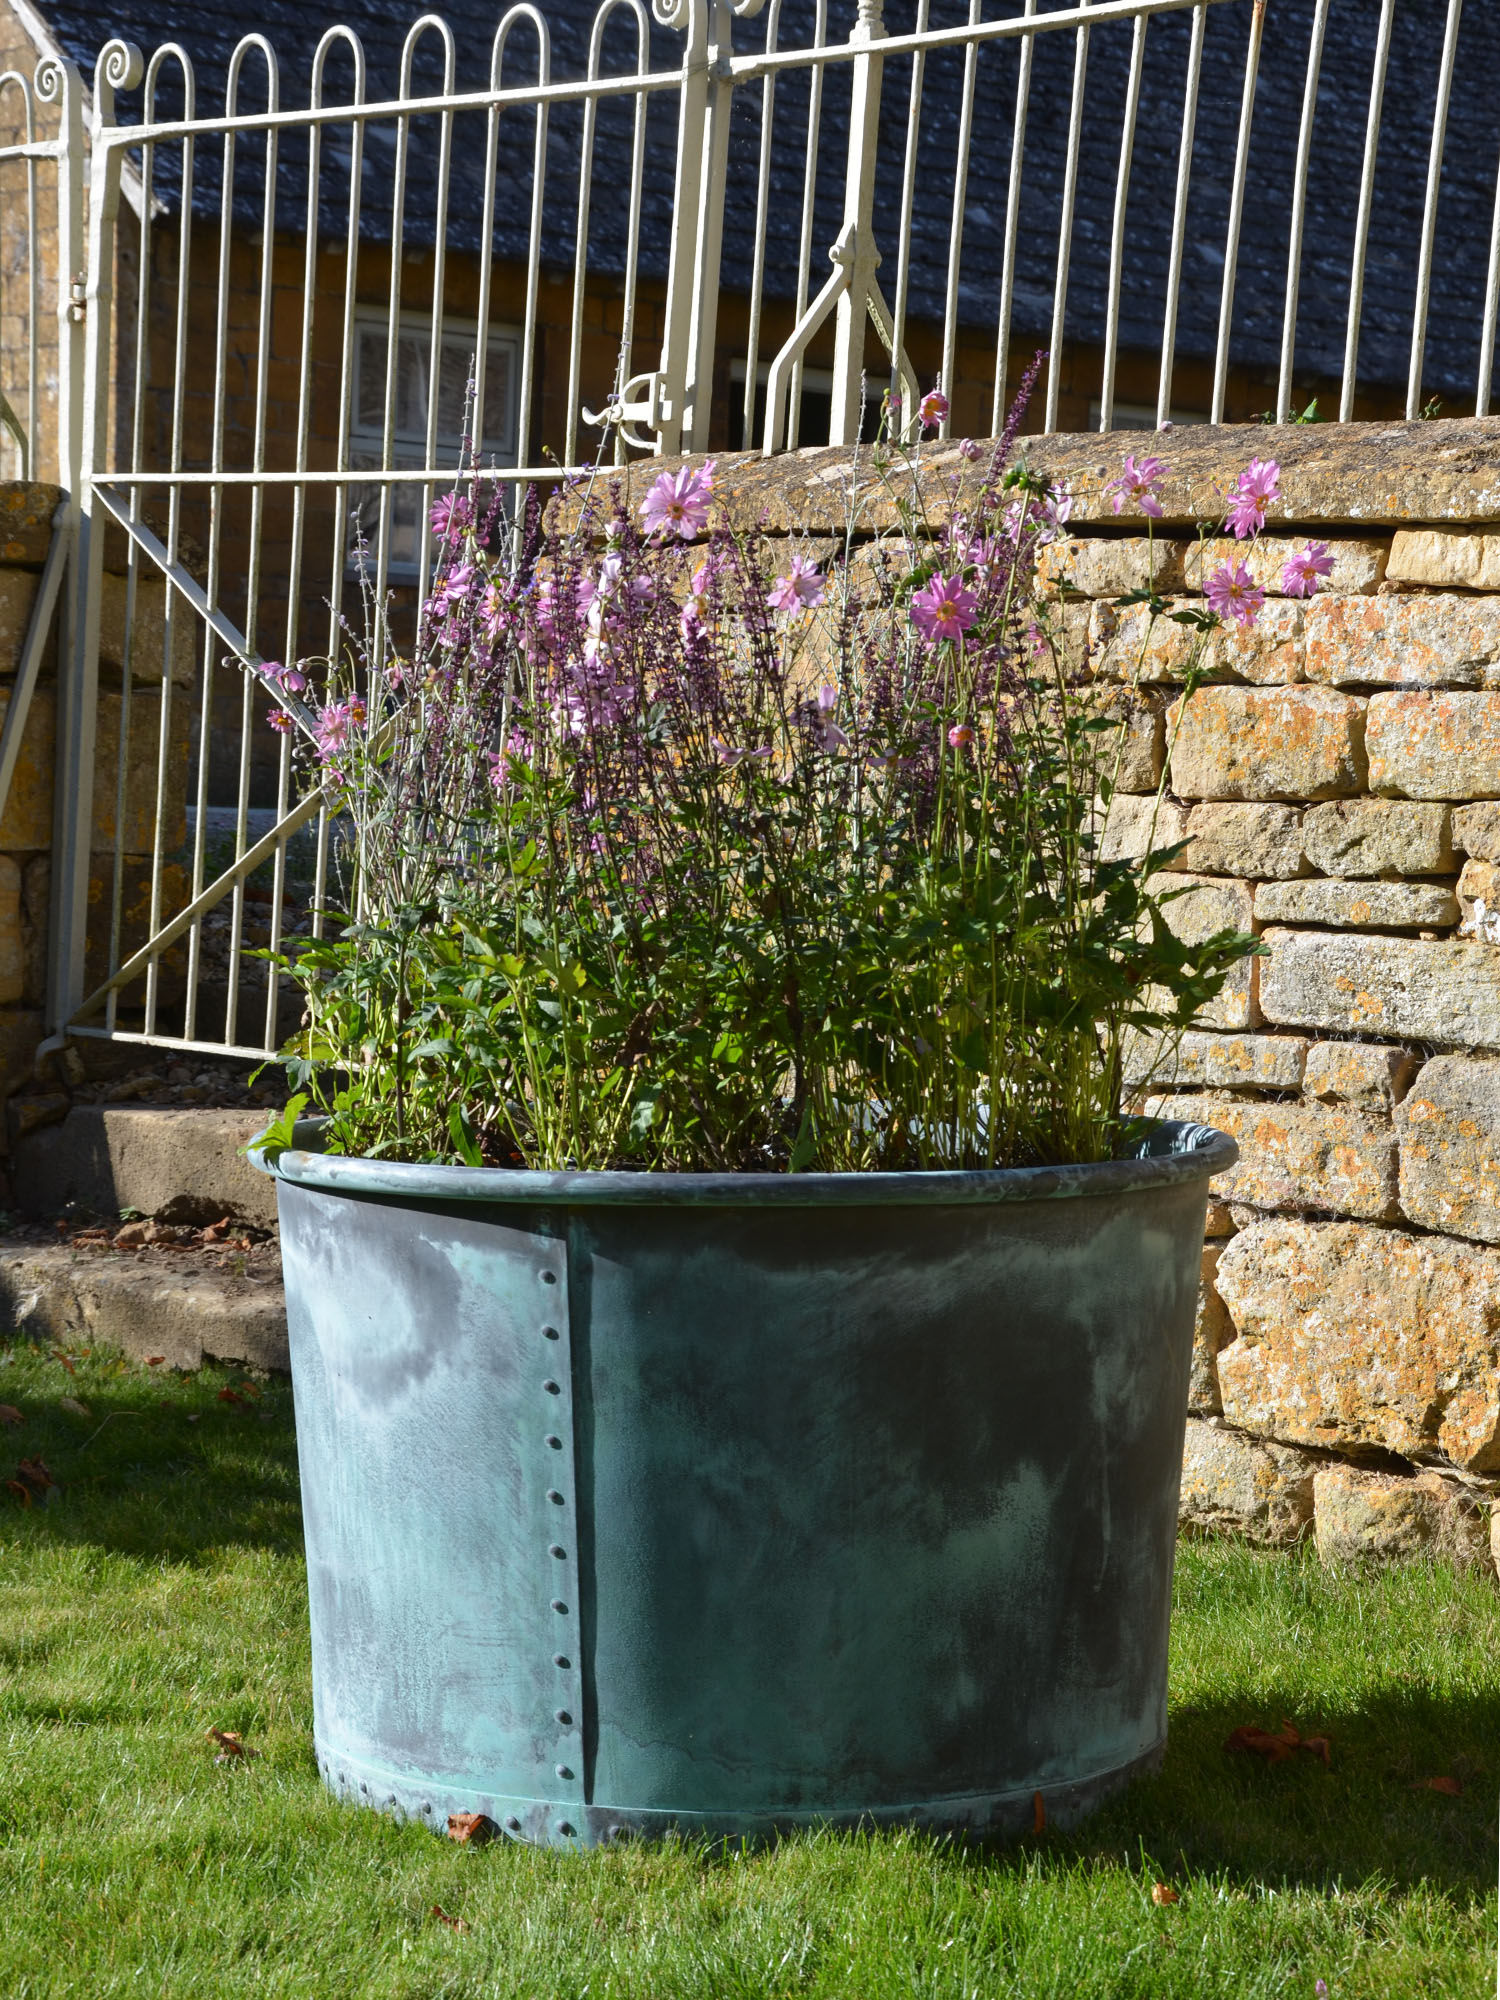 The Circular Copper Planter Large - Rolled Edge